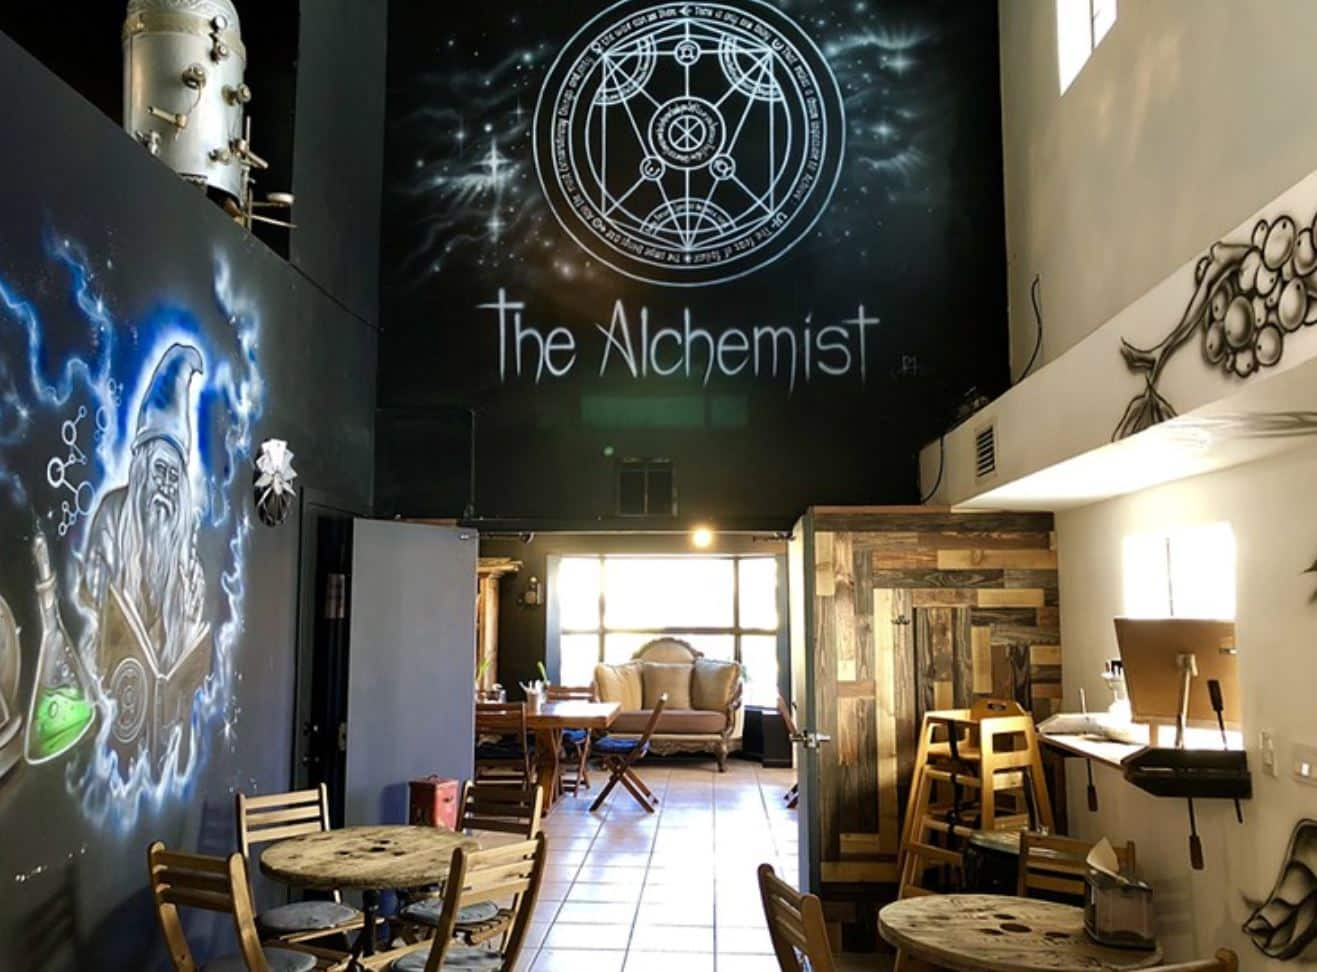 The Alchemist Cafe